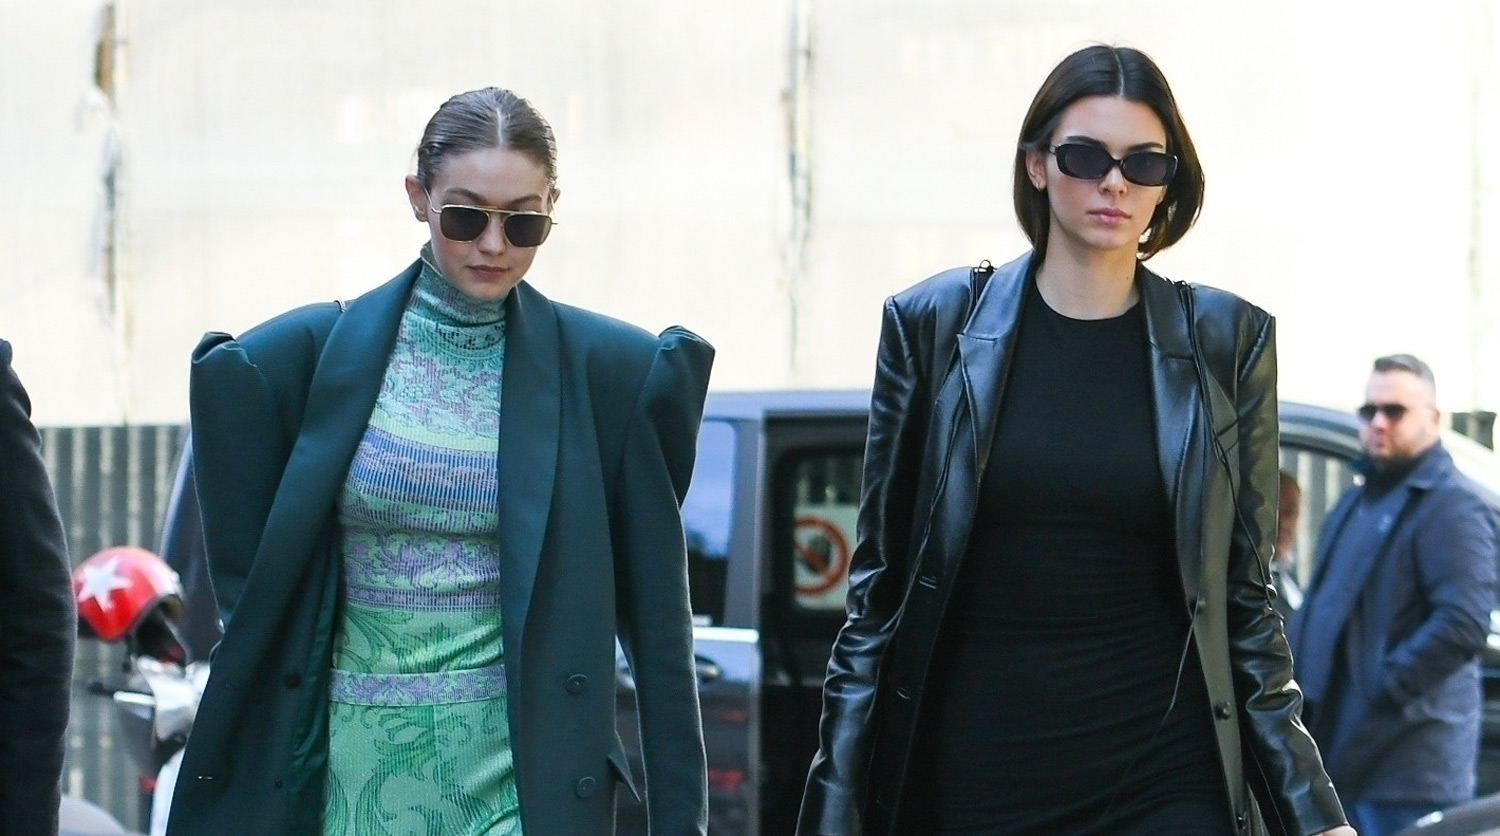 Gigi Hadid Joins BFF Kendall Jenner for a Fashionable Lunch Outing!